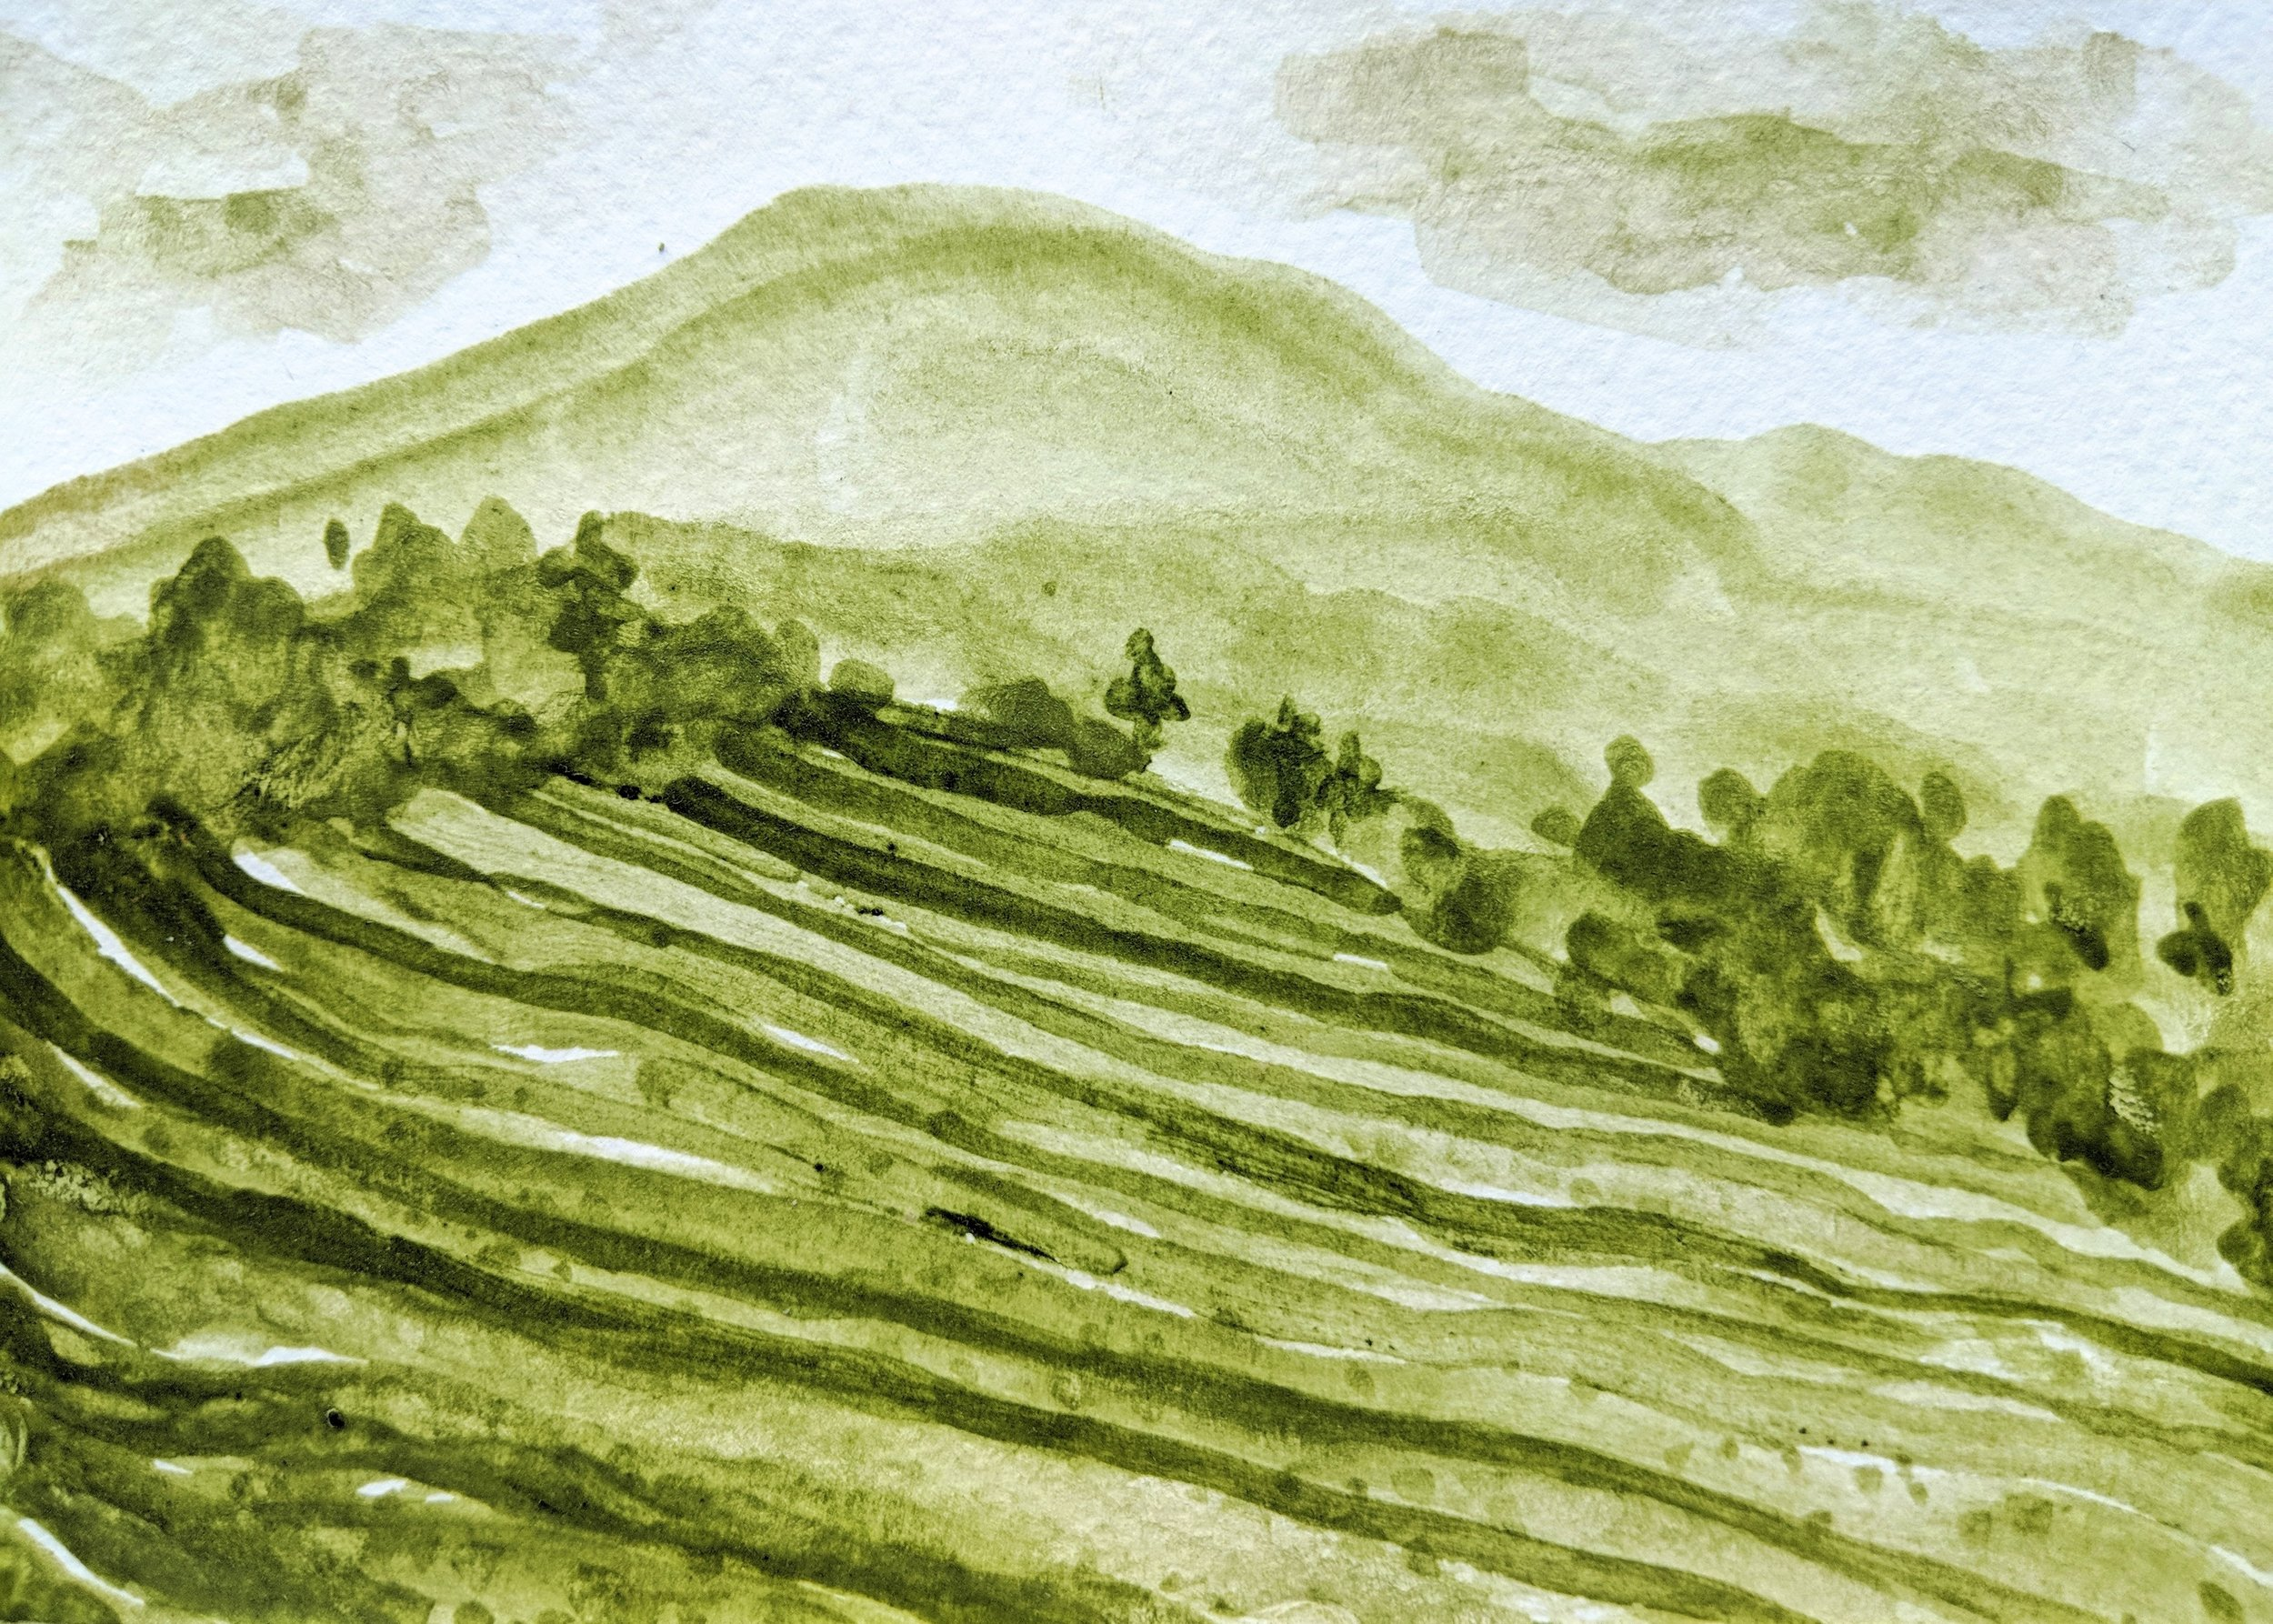 The Dali University Tea Plantation, painted with Matcha from Kunming.